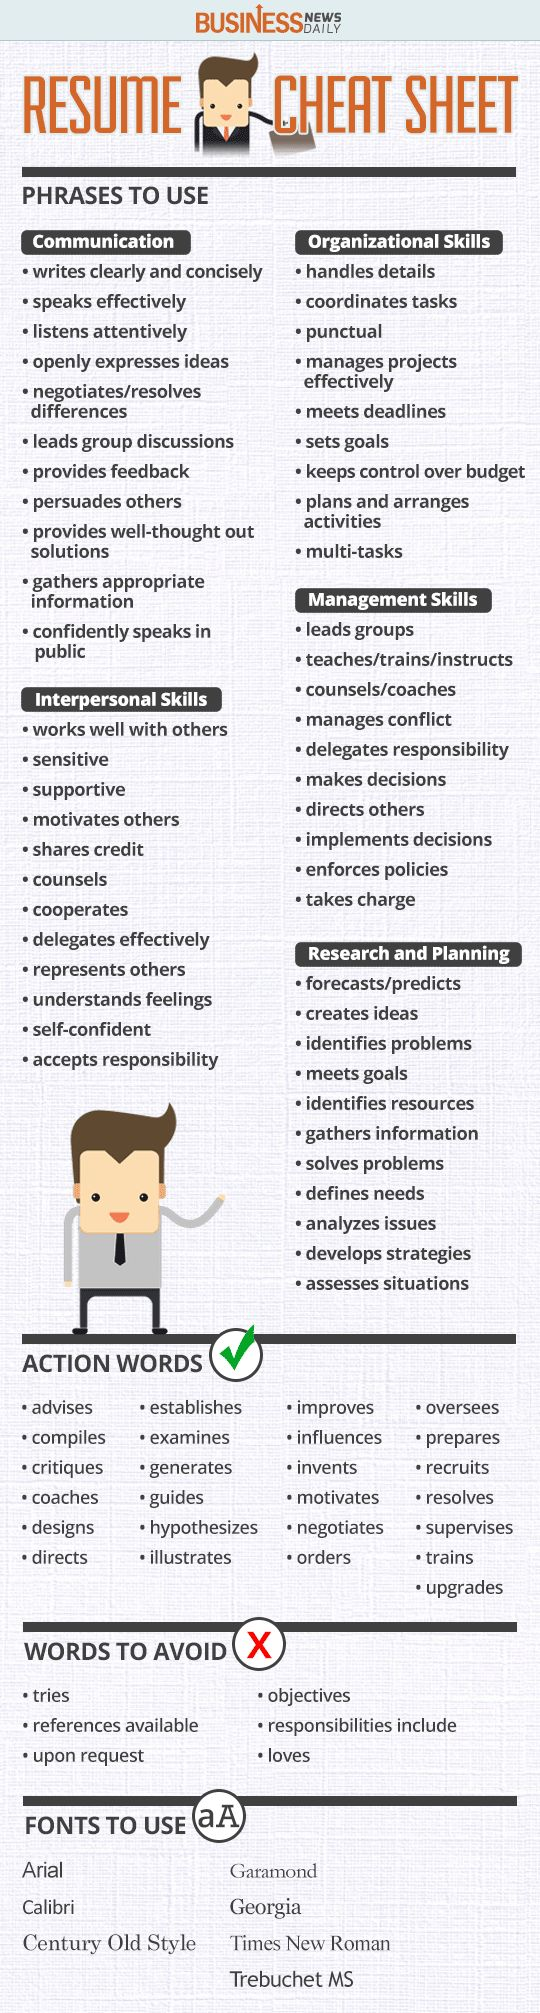 Opposenewapstandardsus  Scenic  Ideas About Resume On Pinterest  Cv Format Resume Cv And  With Fetching Resume Cheat Sheet Infographic Andrews Almost Done With A Complete Unit On Employment Which With Amazing Mft Resume Also Resume For Business School In Addition One Page Resume Or Two And Resume For Artist As Well As How To Write A Sales Resume Additionally Example Of A College Resume From Pinterestcom With Opposenewapstandardsus  Fetching  Ideas About Resume On Pinterest  Cv Format Resume Cv And  With Amazing Resume Cheat Sheet Infographic Andrews Almost Done With A Complete Unit On Employment Which And Scenic Mft Resume Also Resume For Business School In Addition One Page Resume Or Two From Pinterestcom